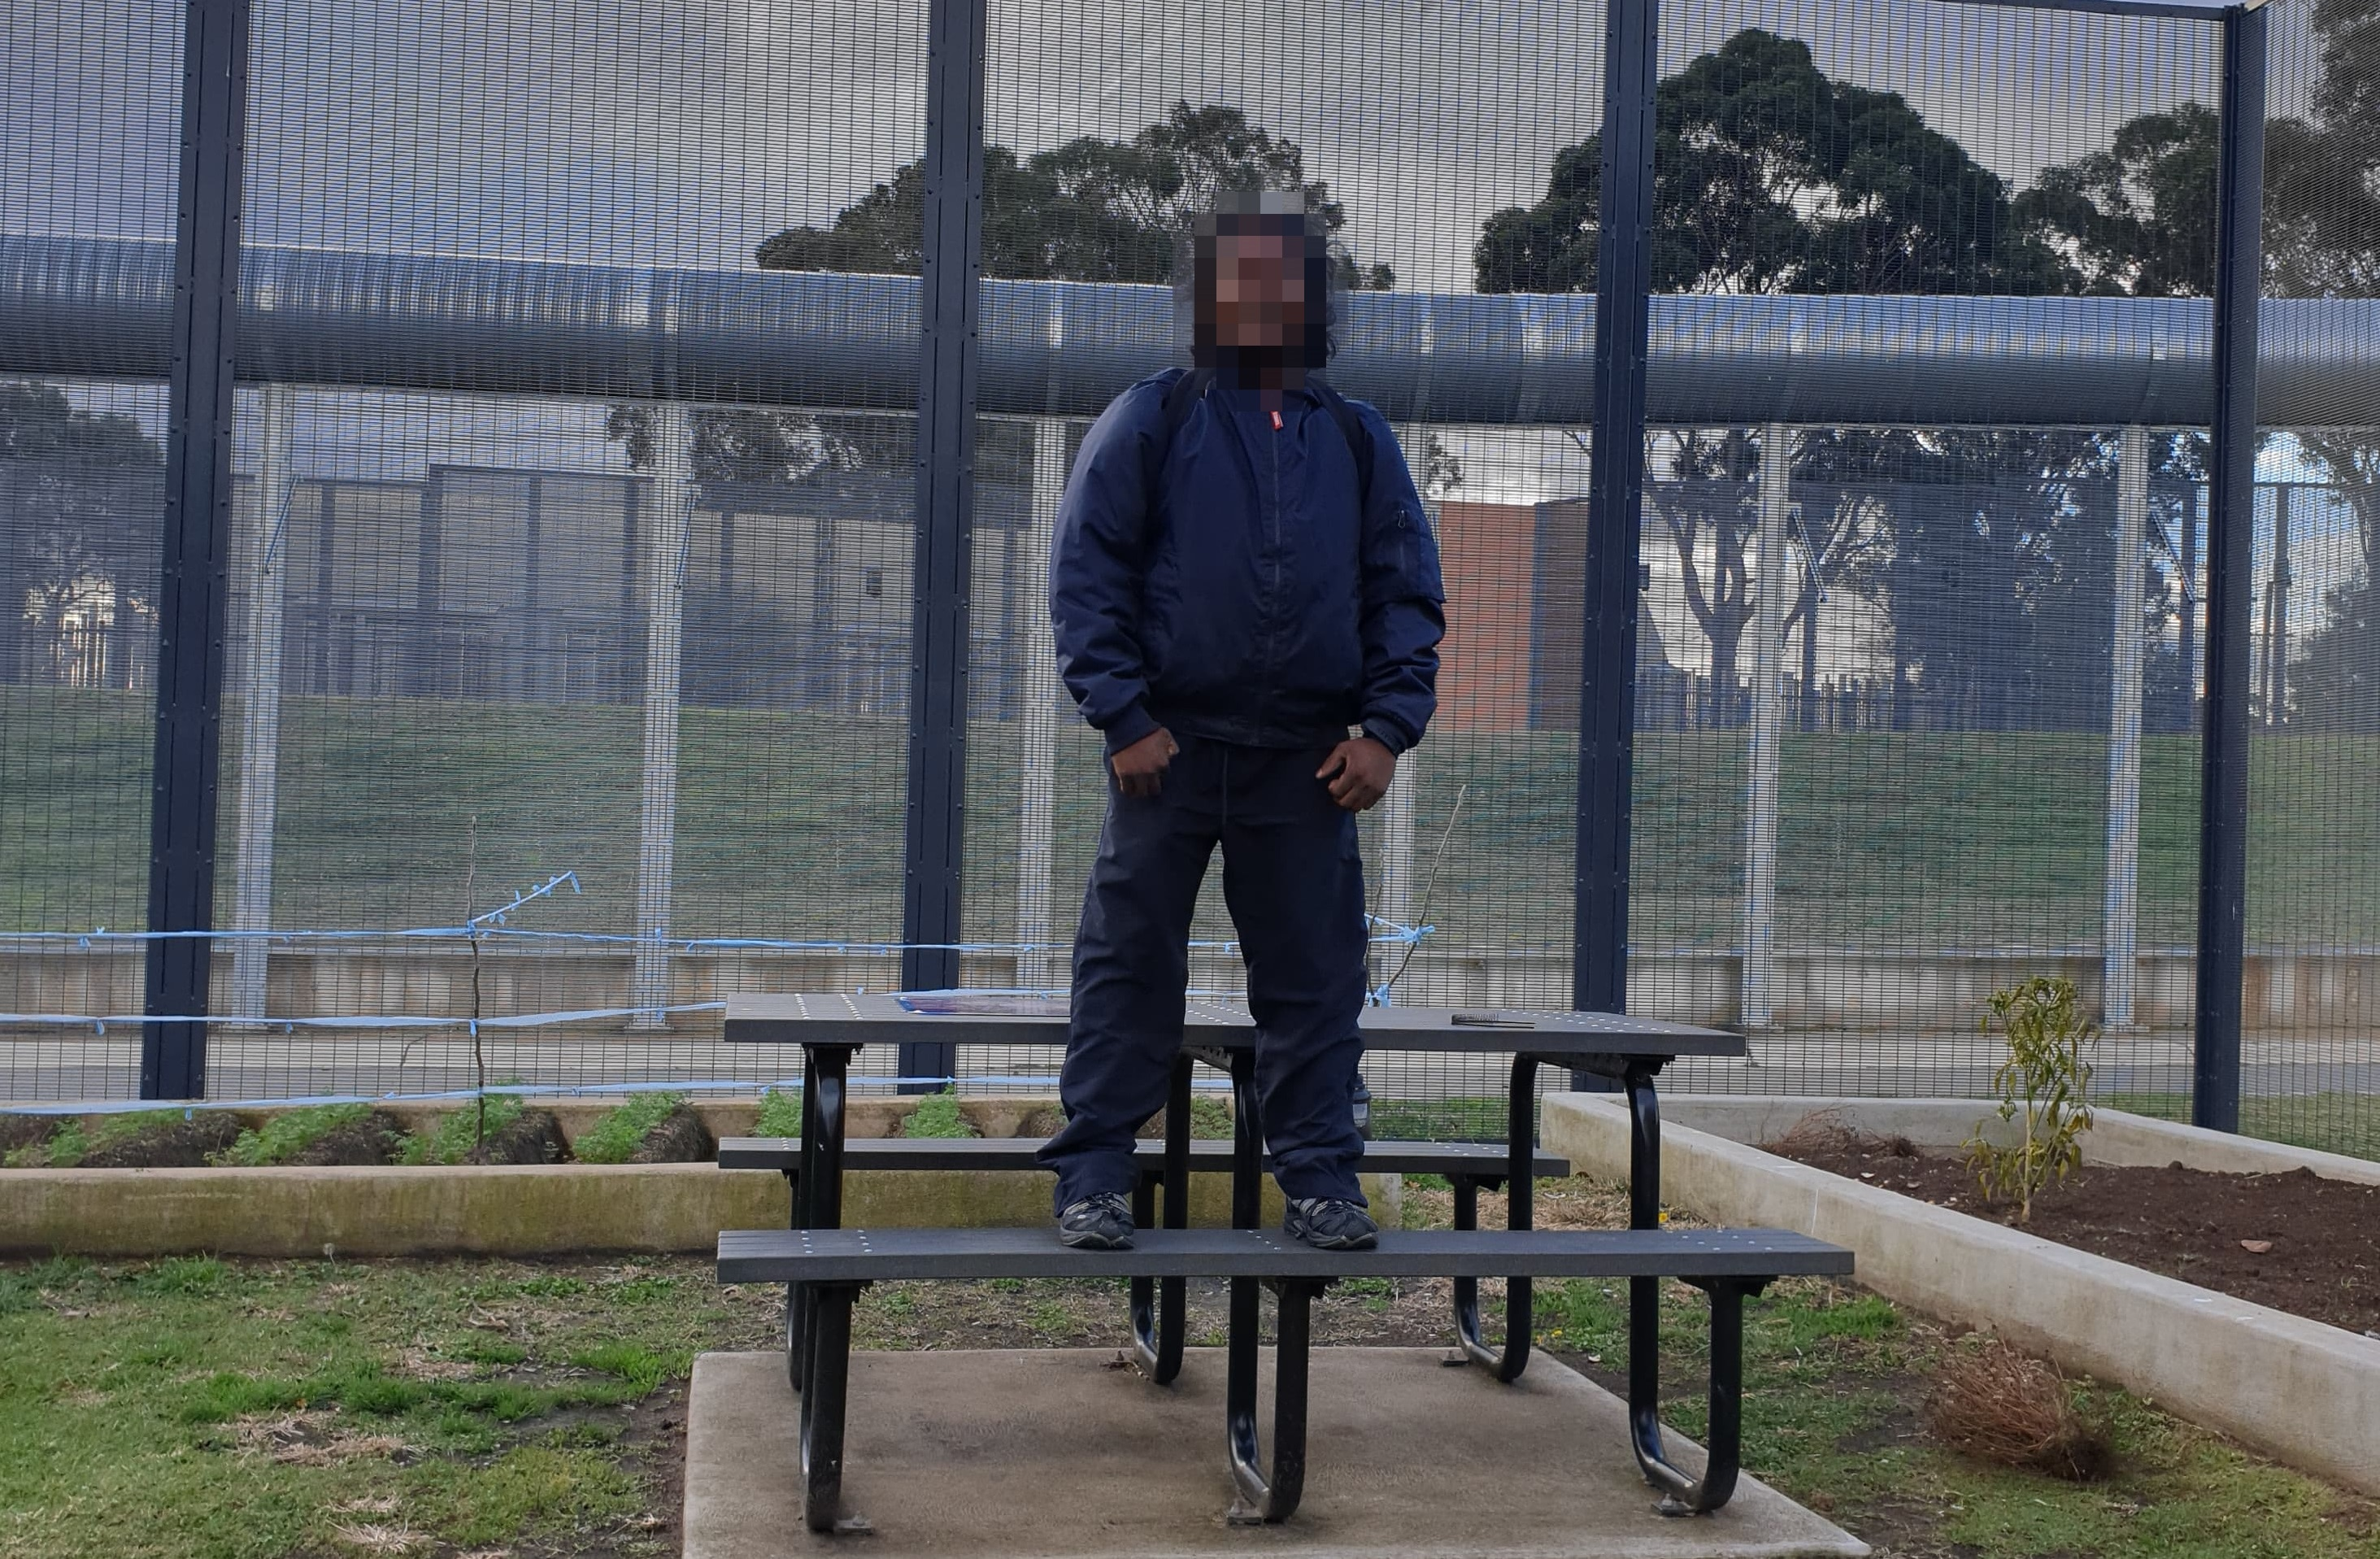 The man is in Villawood Immigration Detention Centre.